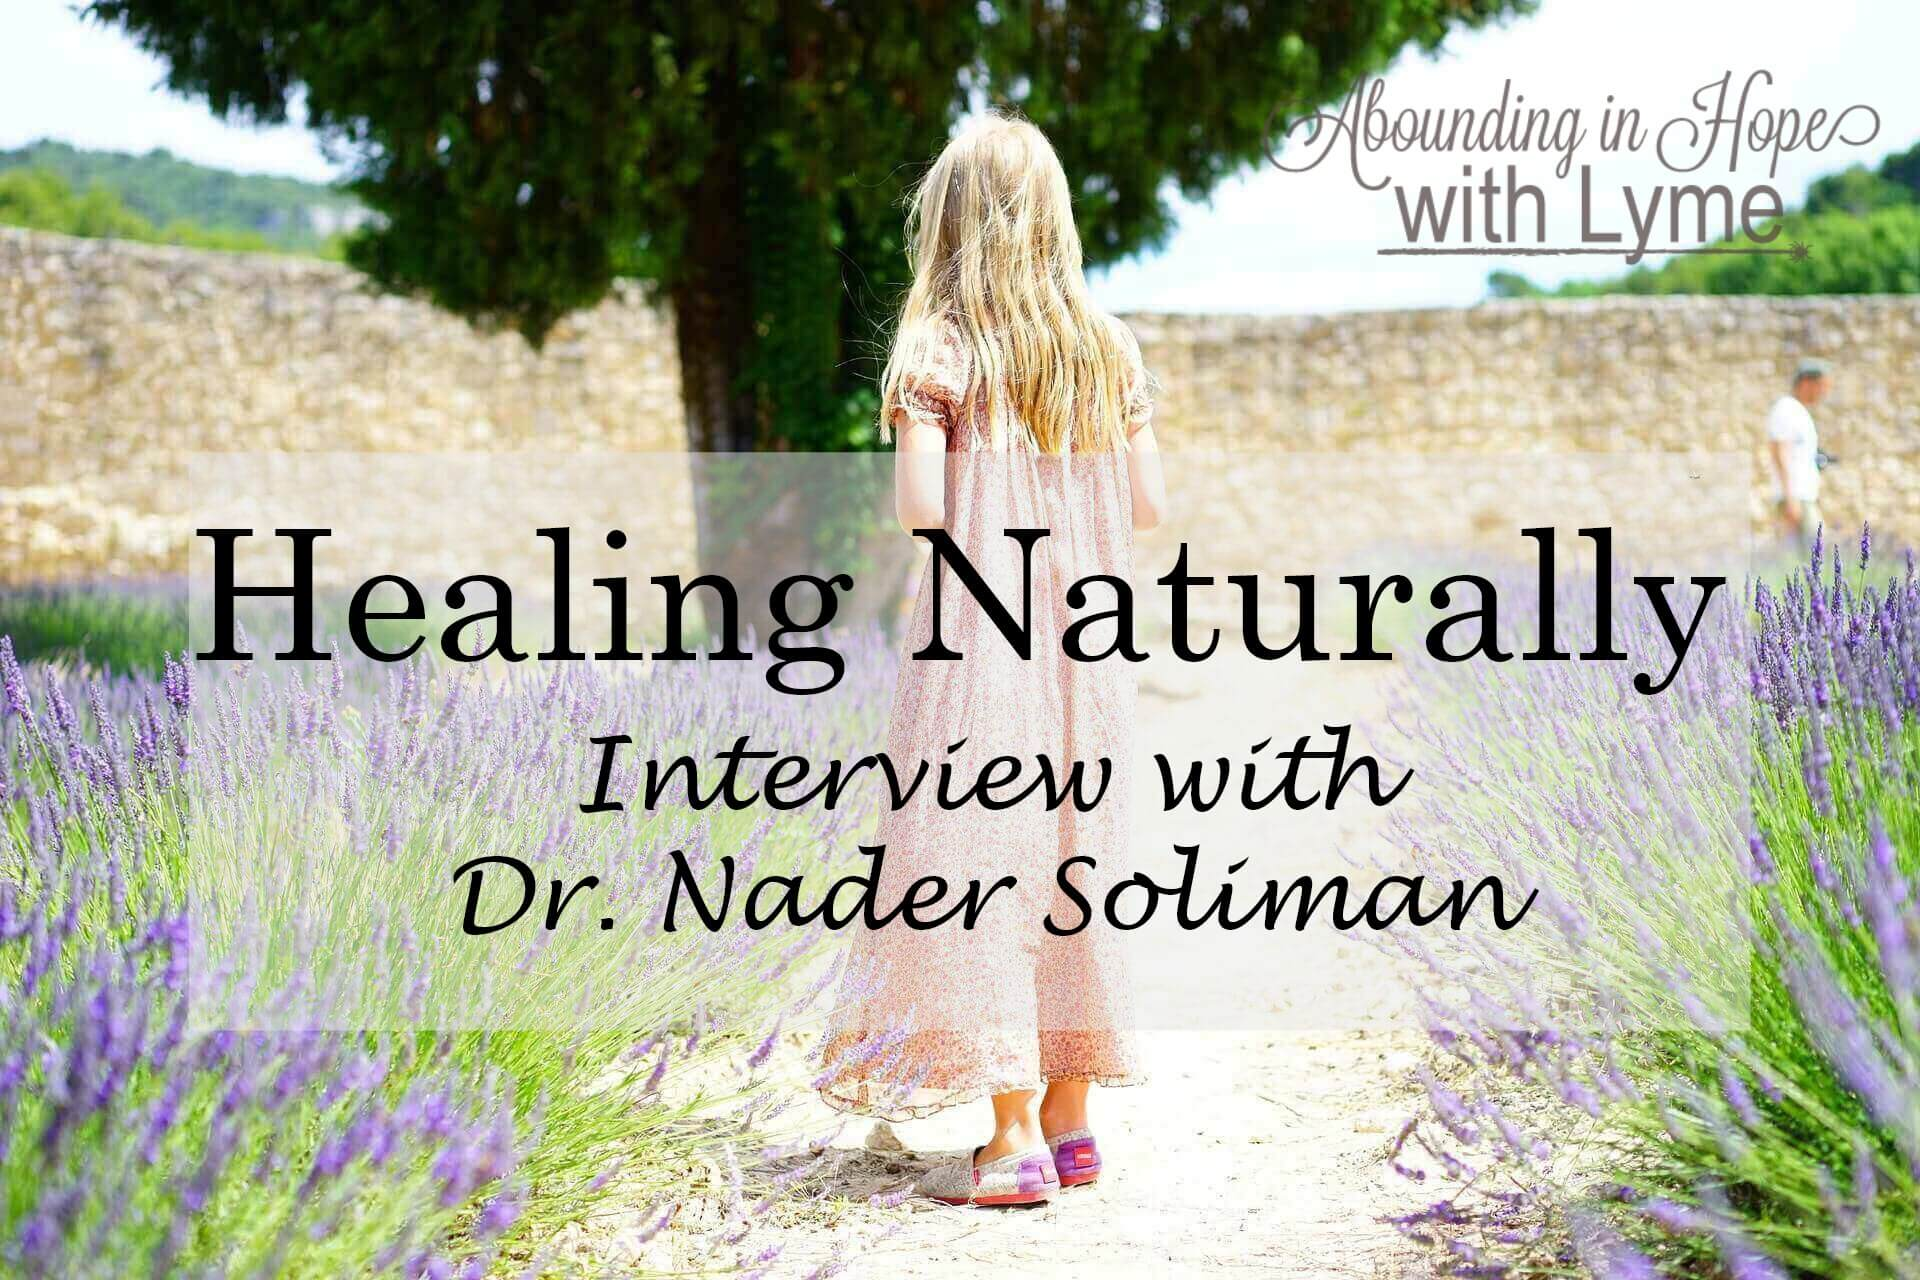 Healing Naturally - Interview with Dr  Nader Soliman